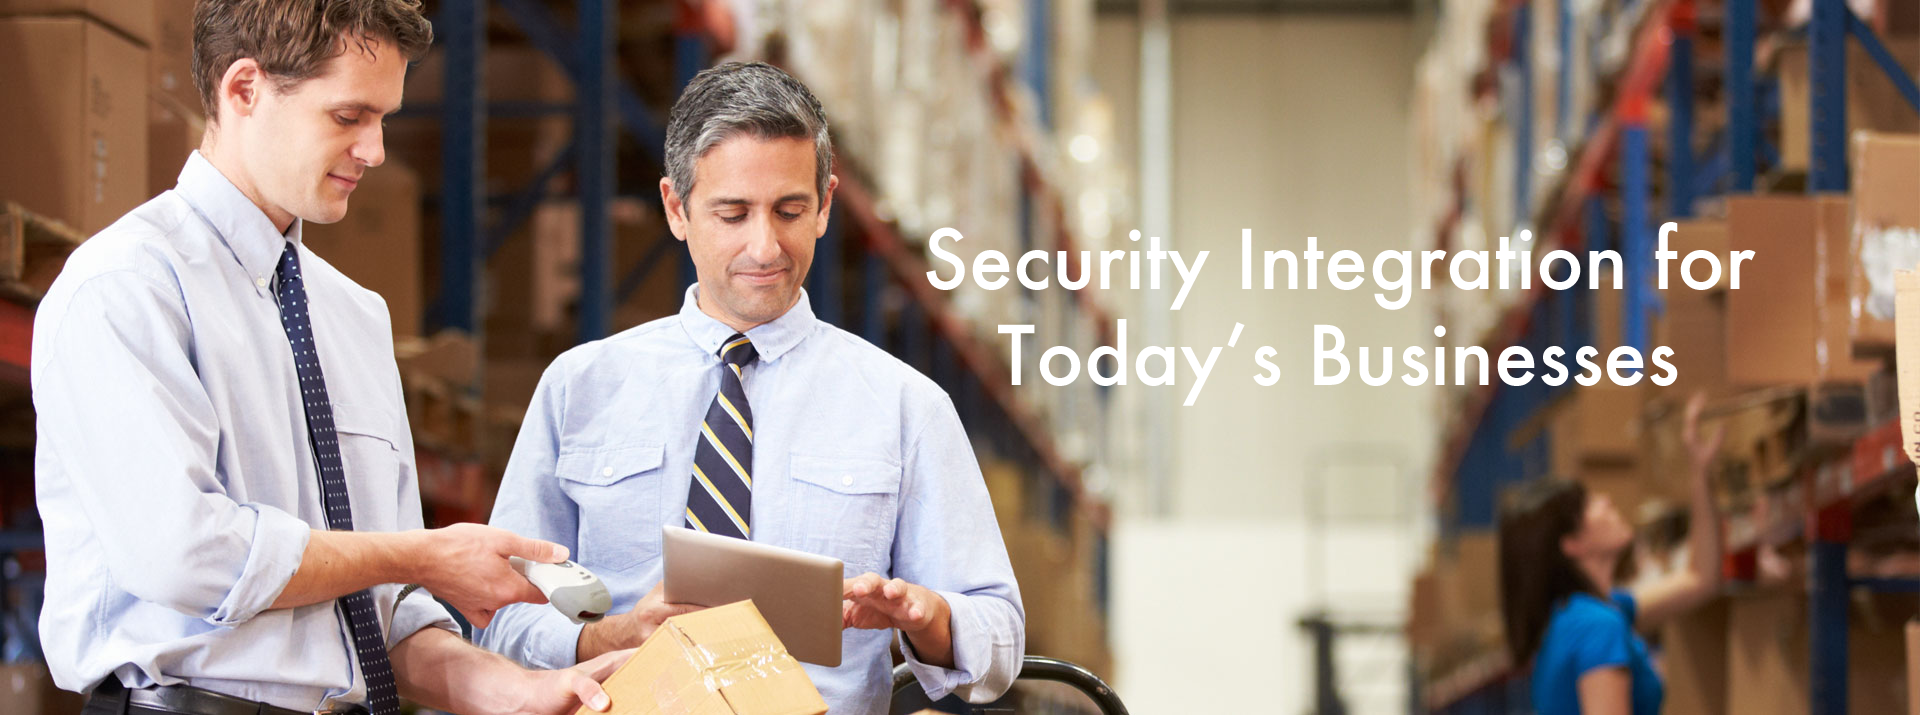 Business Security Integration Alarms